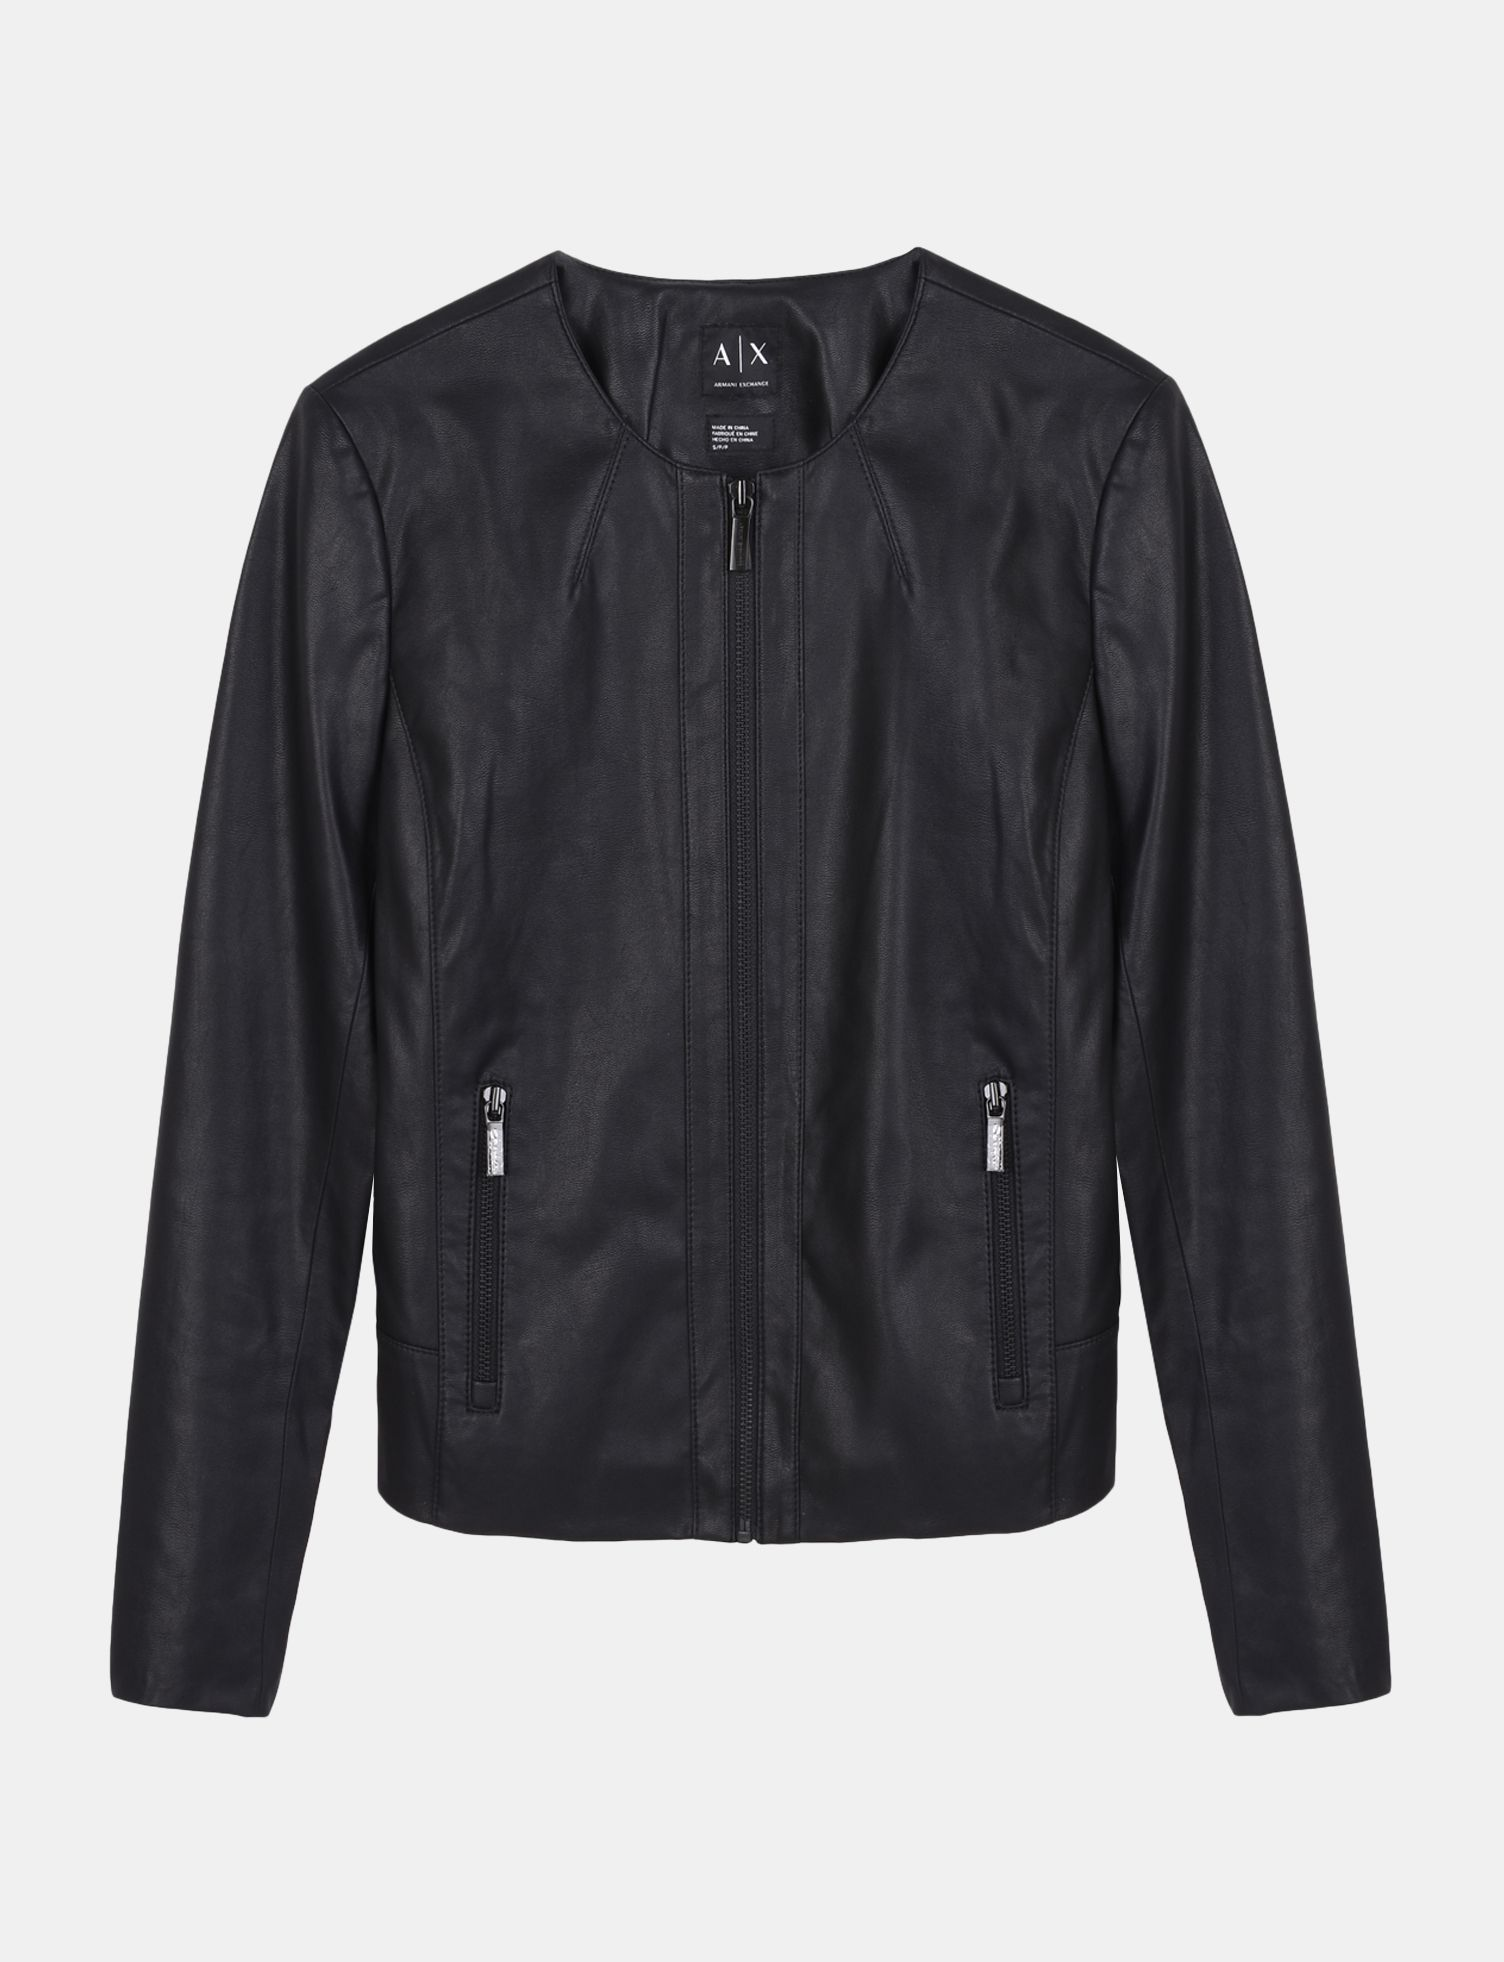 Armani Exchange FAUX LEATHER JACKET, Blouson Jacket for